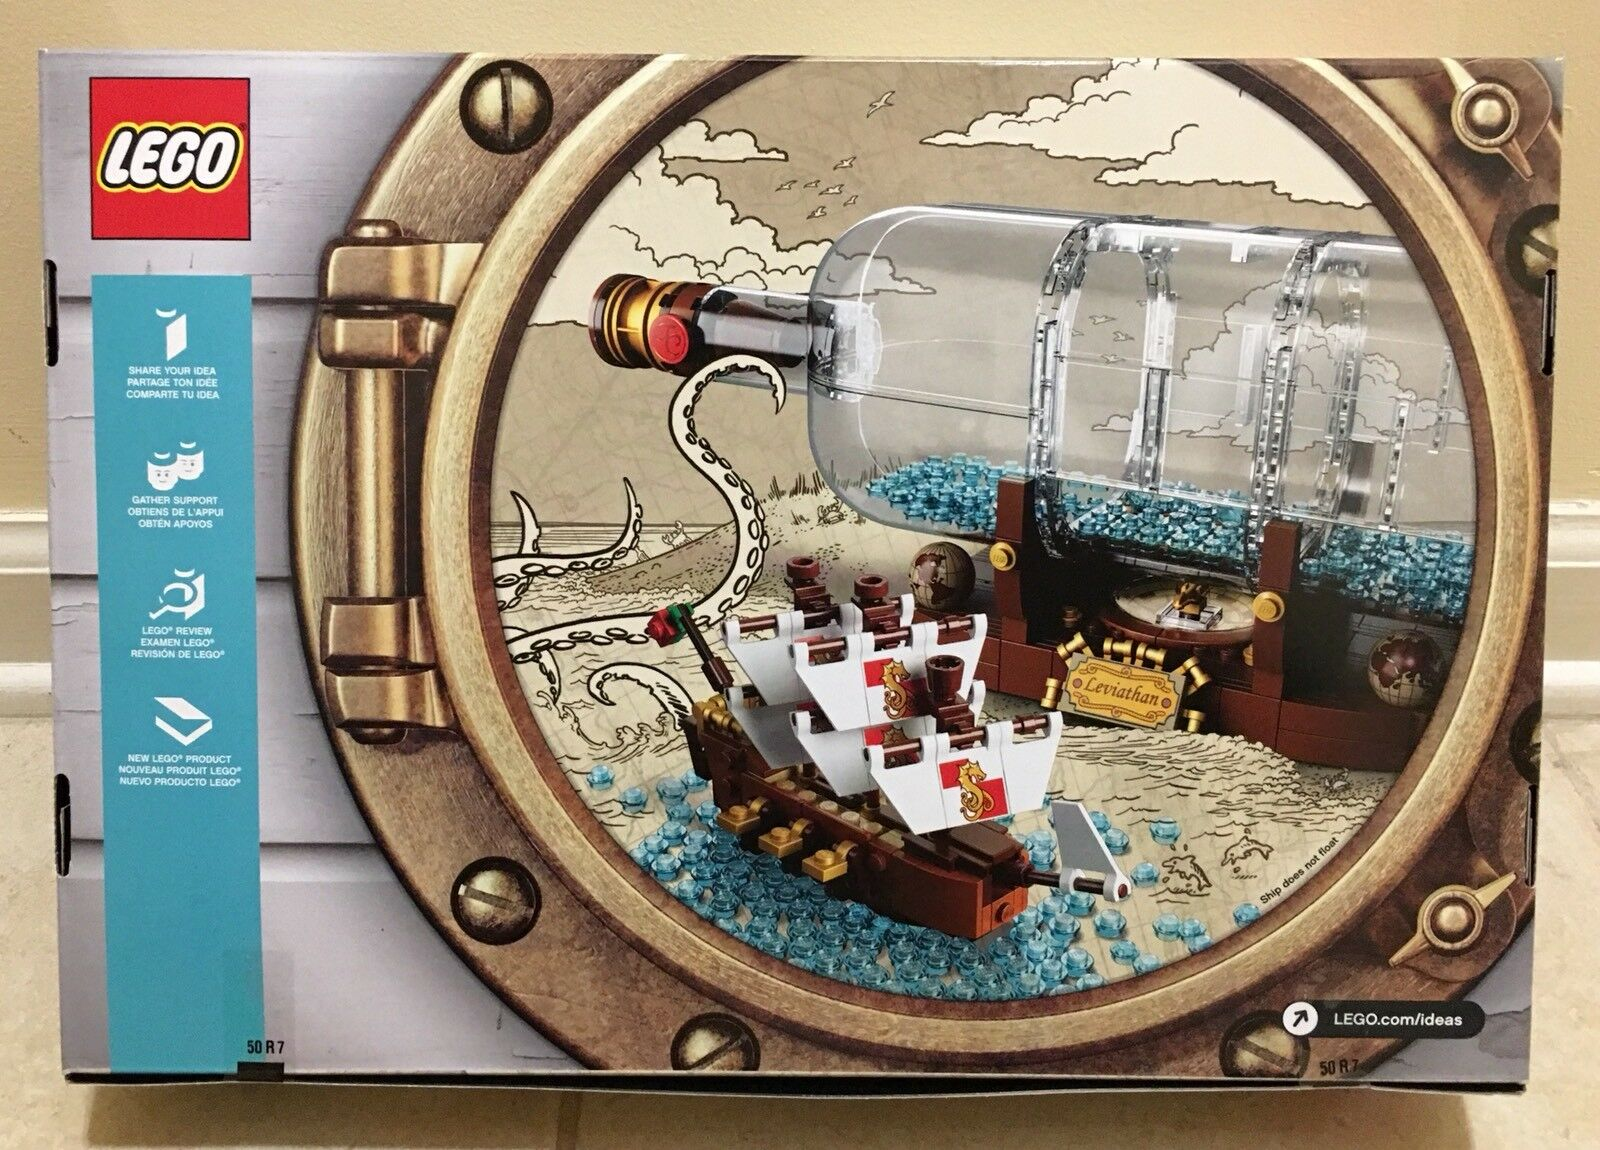 NEW LEGO 21313 IDEAS SHIP IN IN IN A BOTTLE SEALED IN HAND READY TO SHIP 100%AUTHENTIC bec74c